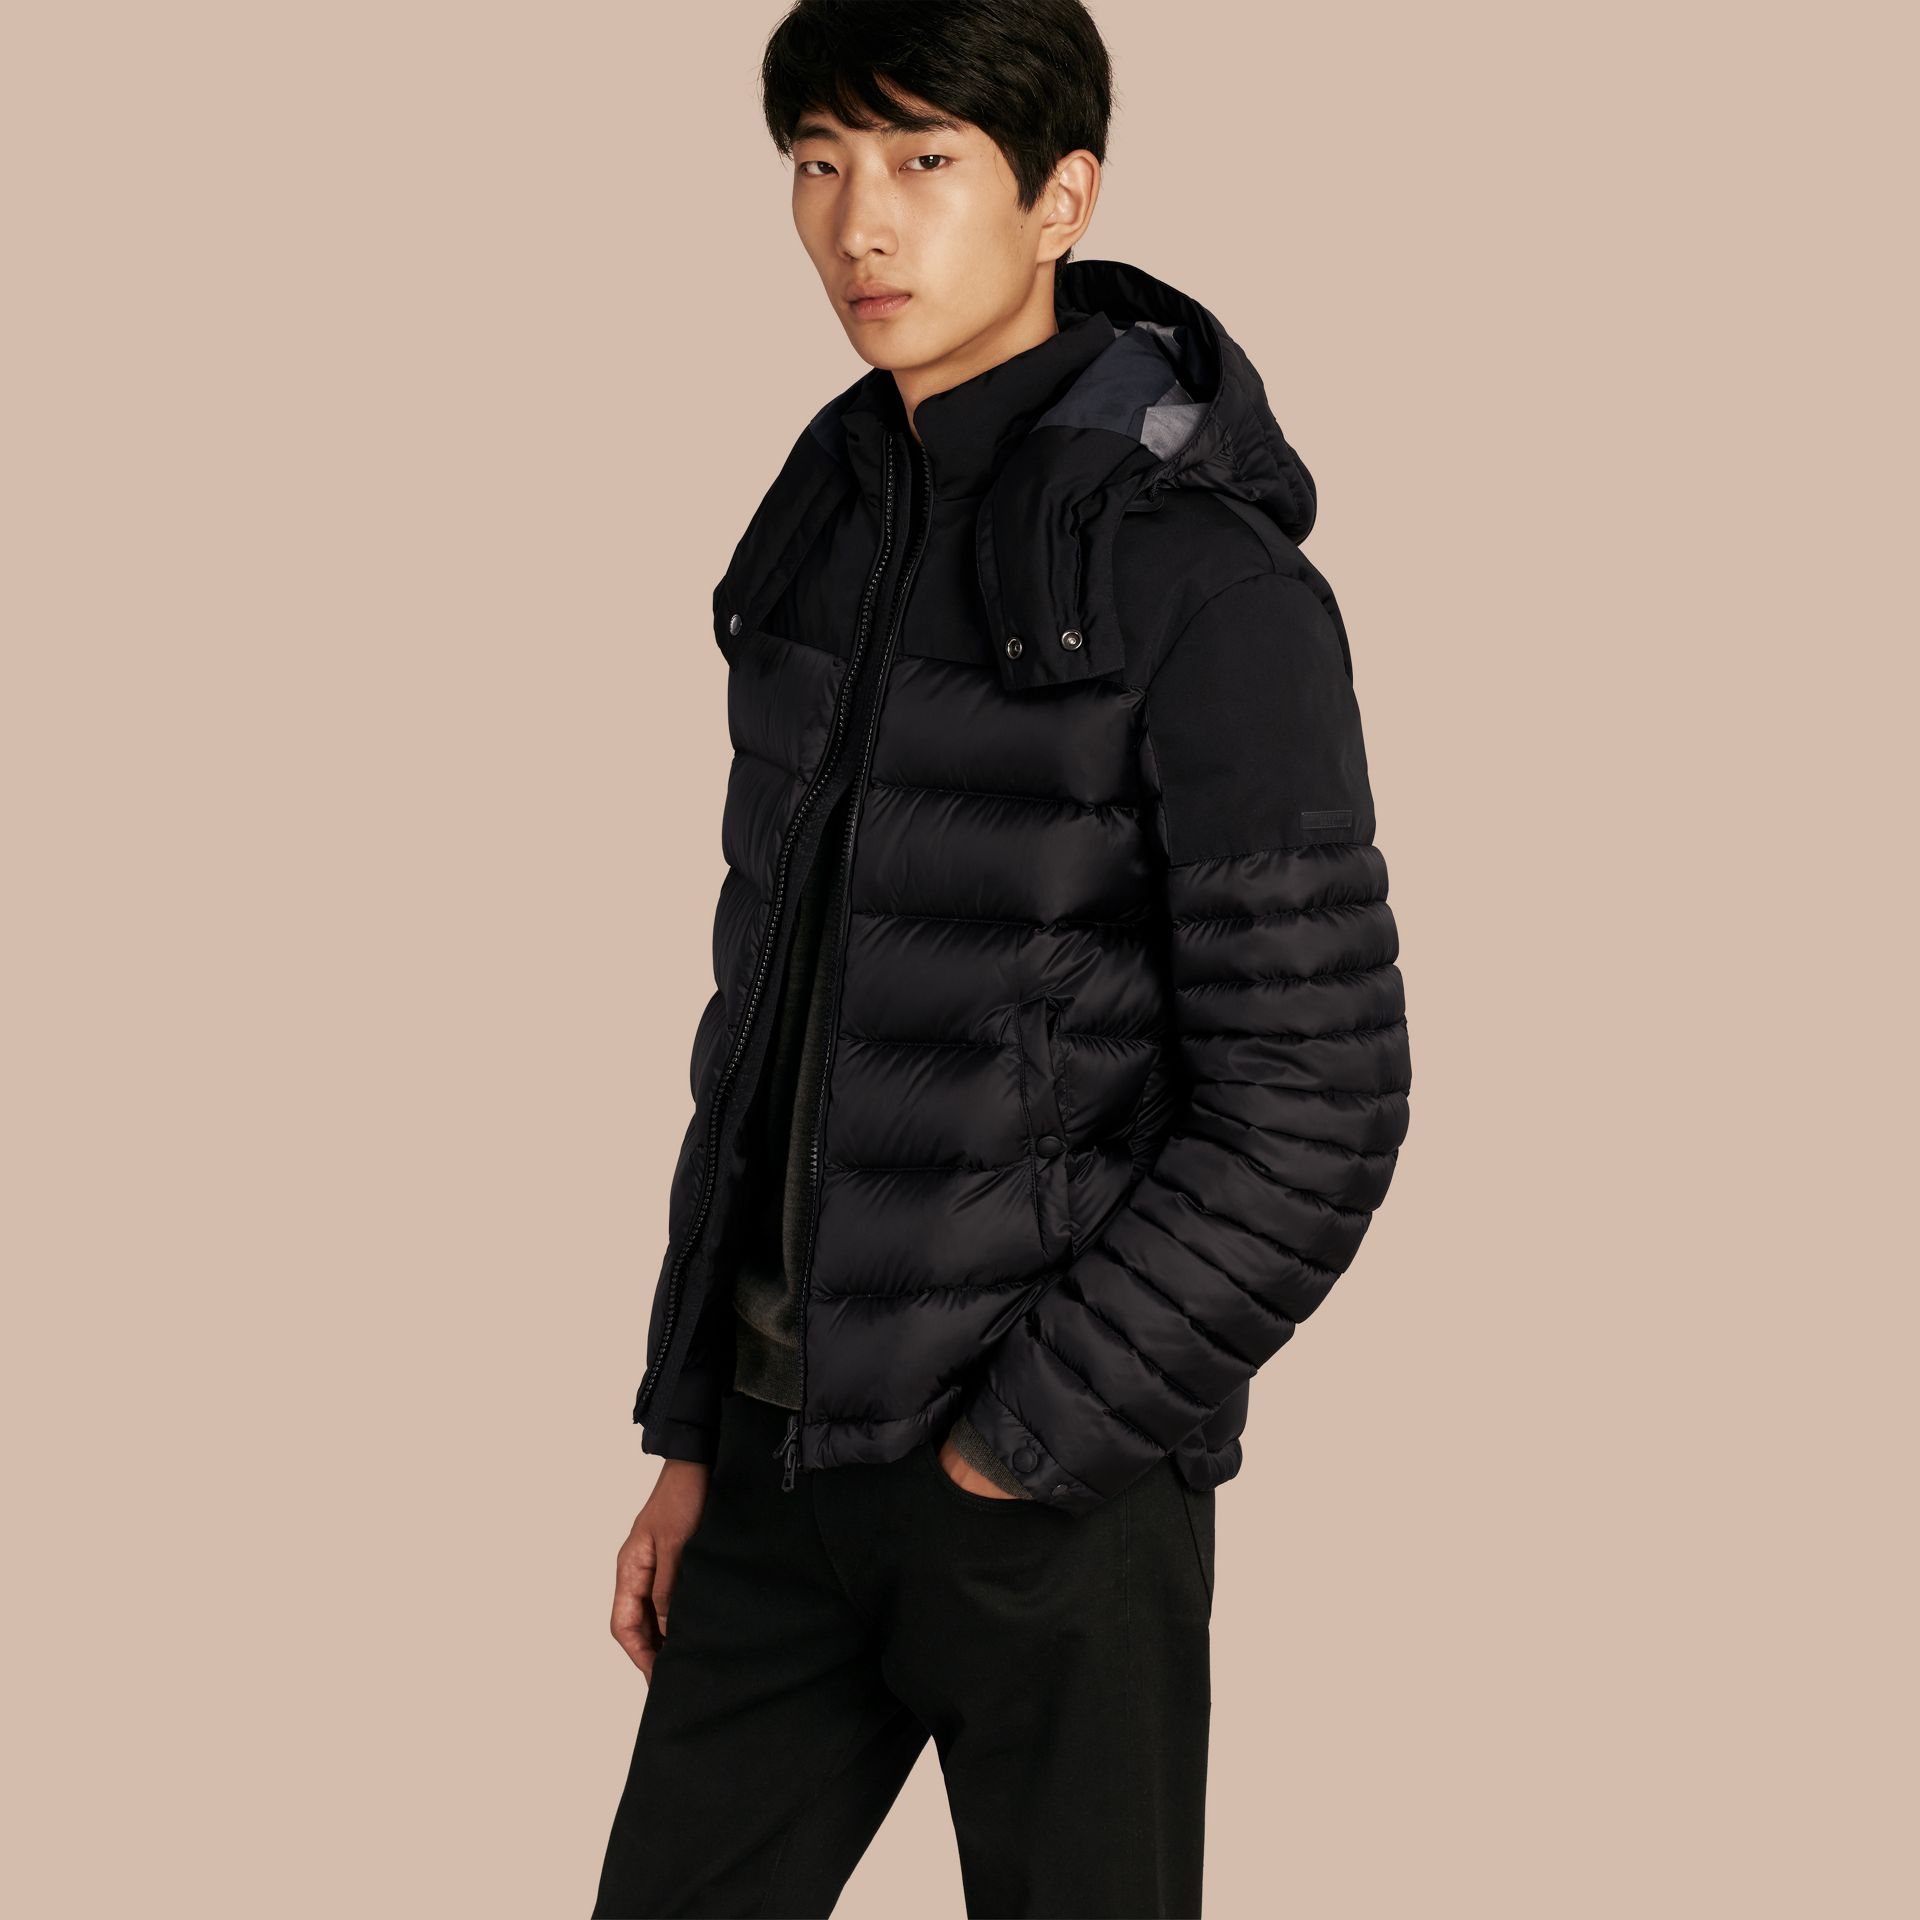 Black Mid-weight Down-filled Technical Puffer Jacket Black - gallery image 1